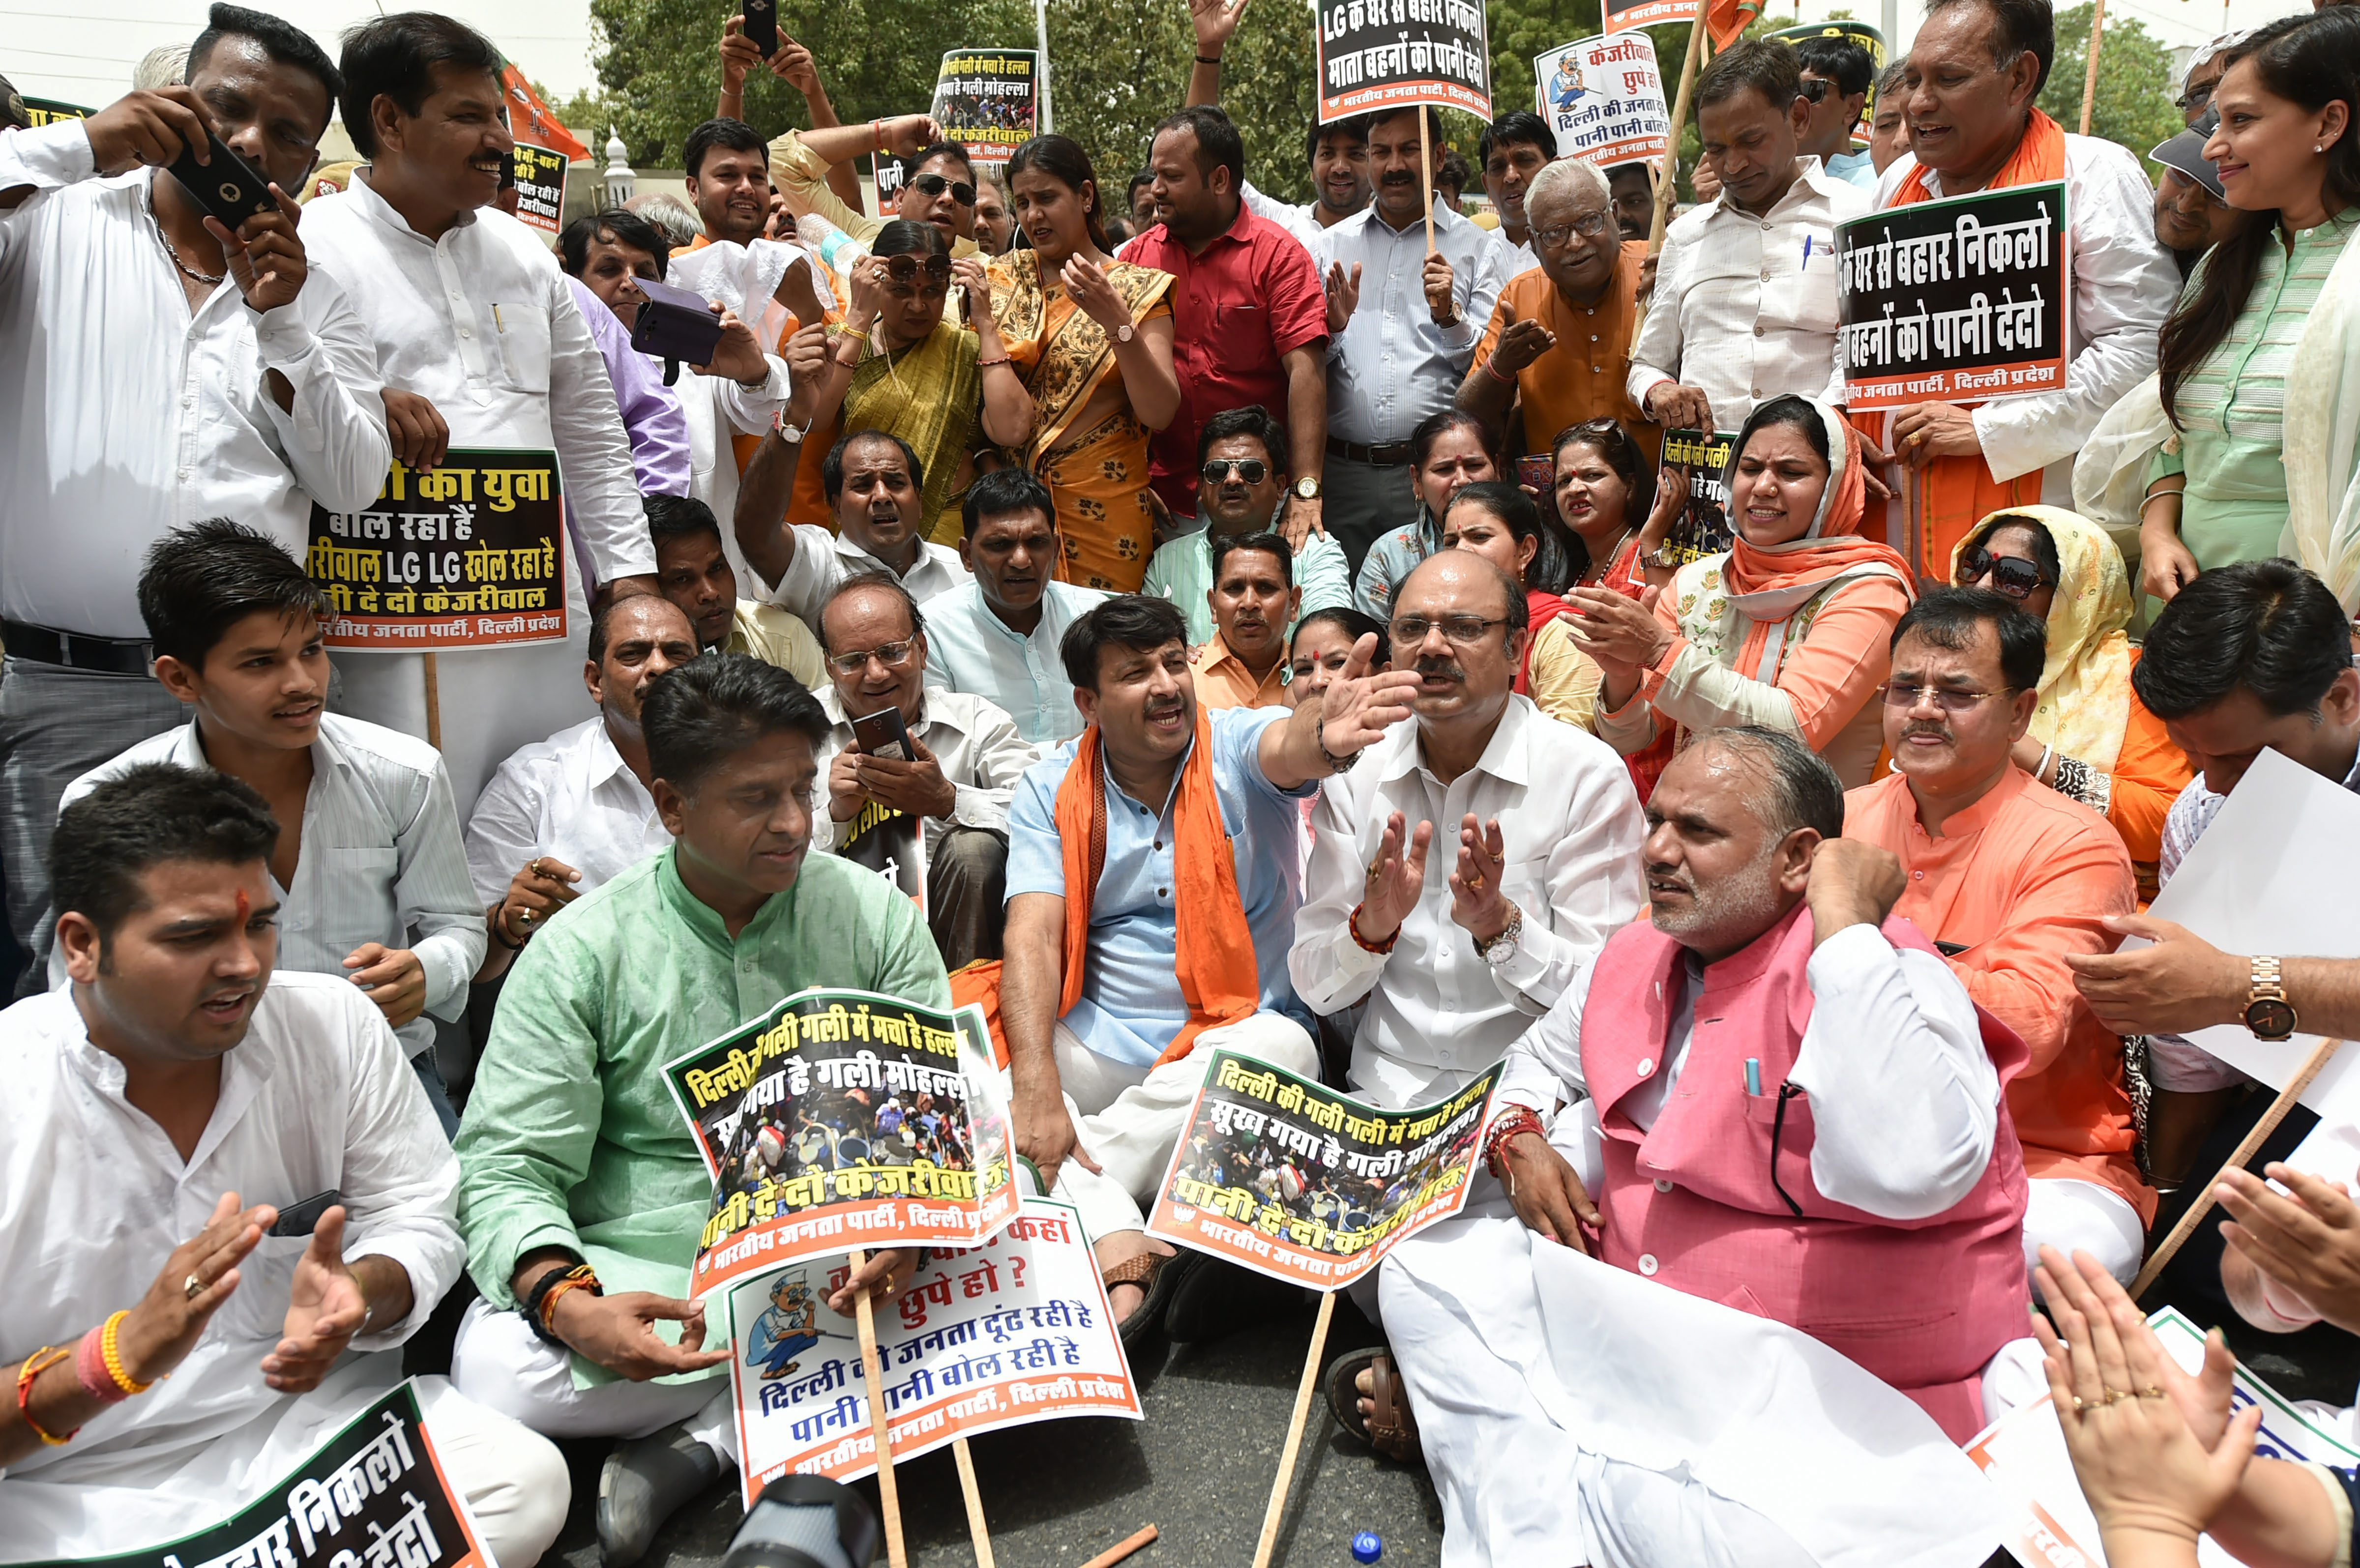 Delhi BJP president Manoj Tiwari with party workers raise slogans demanding water-power supply as they march towards Delhi chief minister Arvind Kejriwal's office, in New Delhi on Wednesday, June 13, 2018. Credit: PTI/Arun Sharma